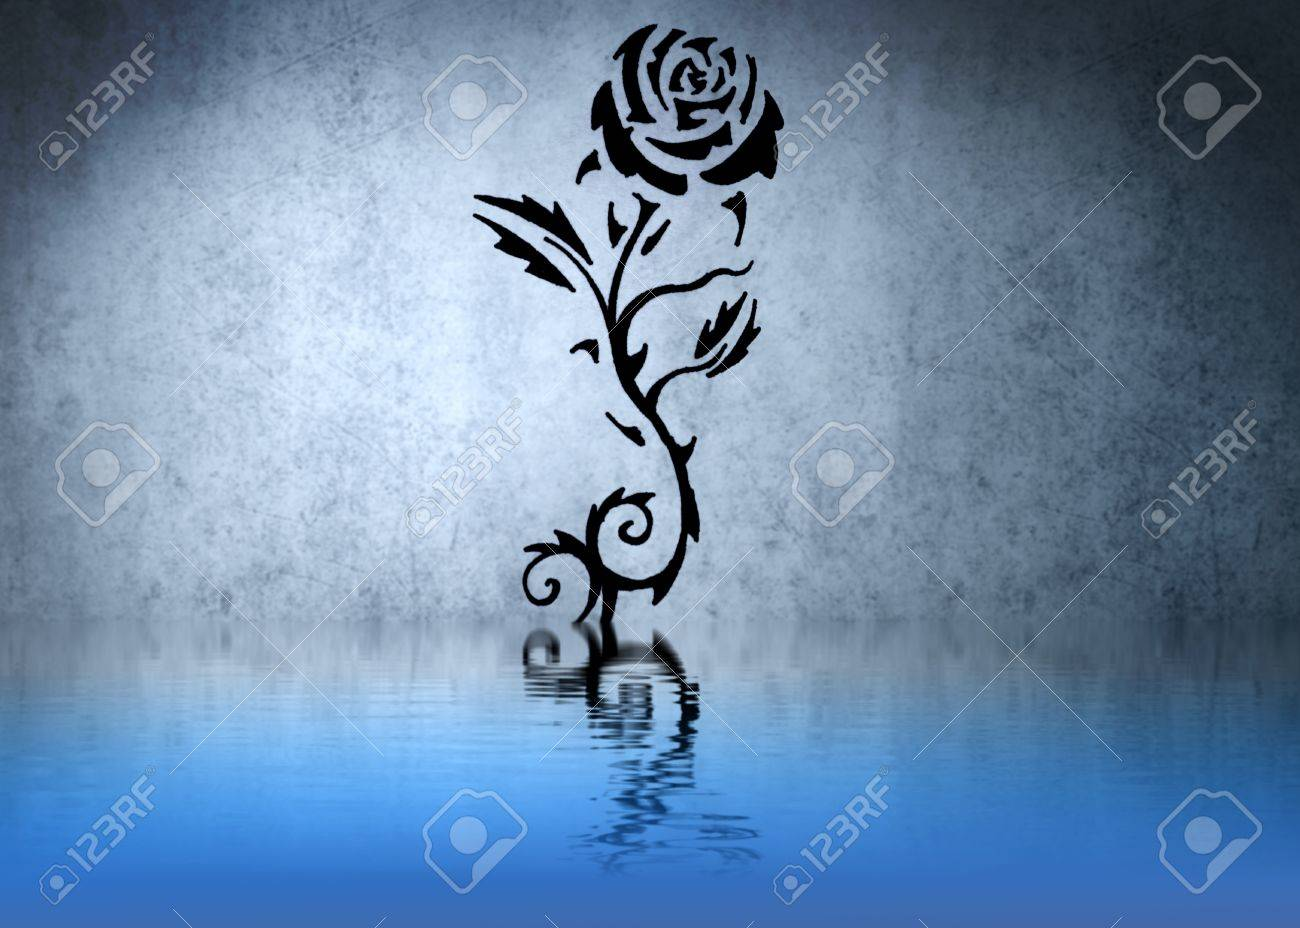 Tattoo Of A Black Rose With Thorns With Water Reflections Stock